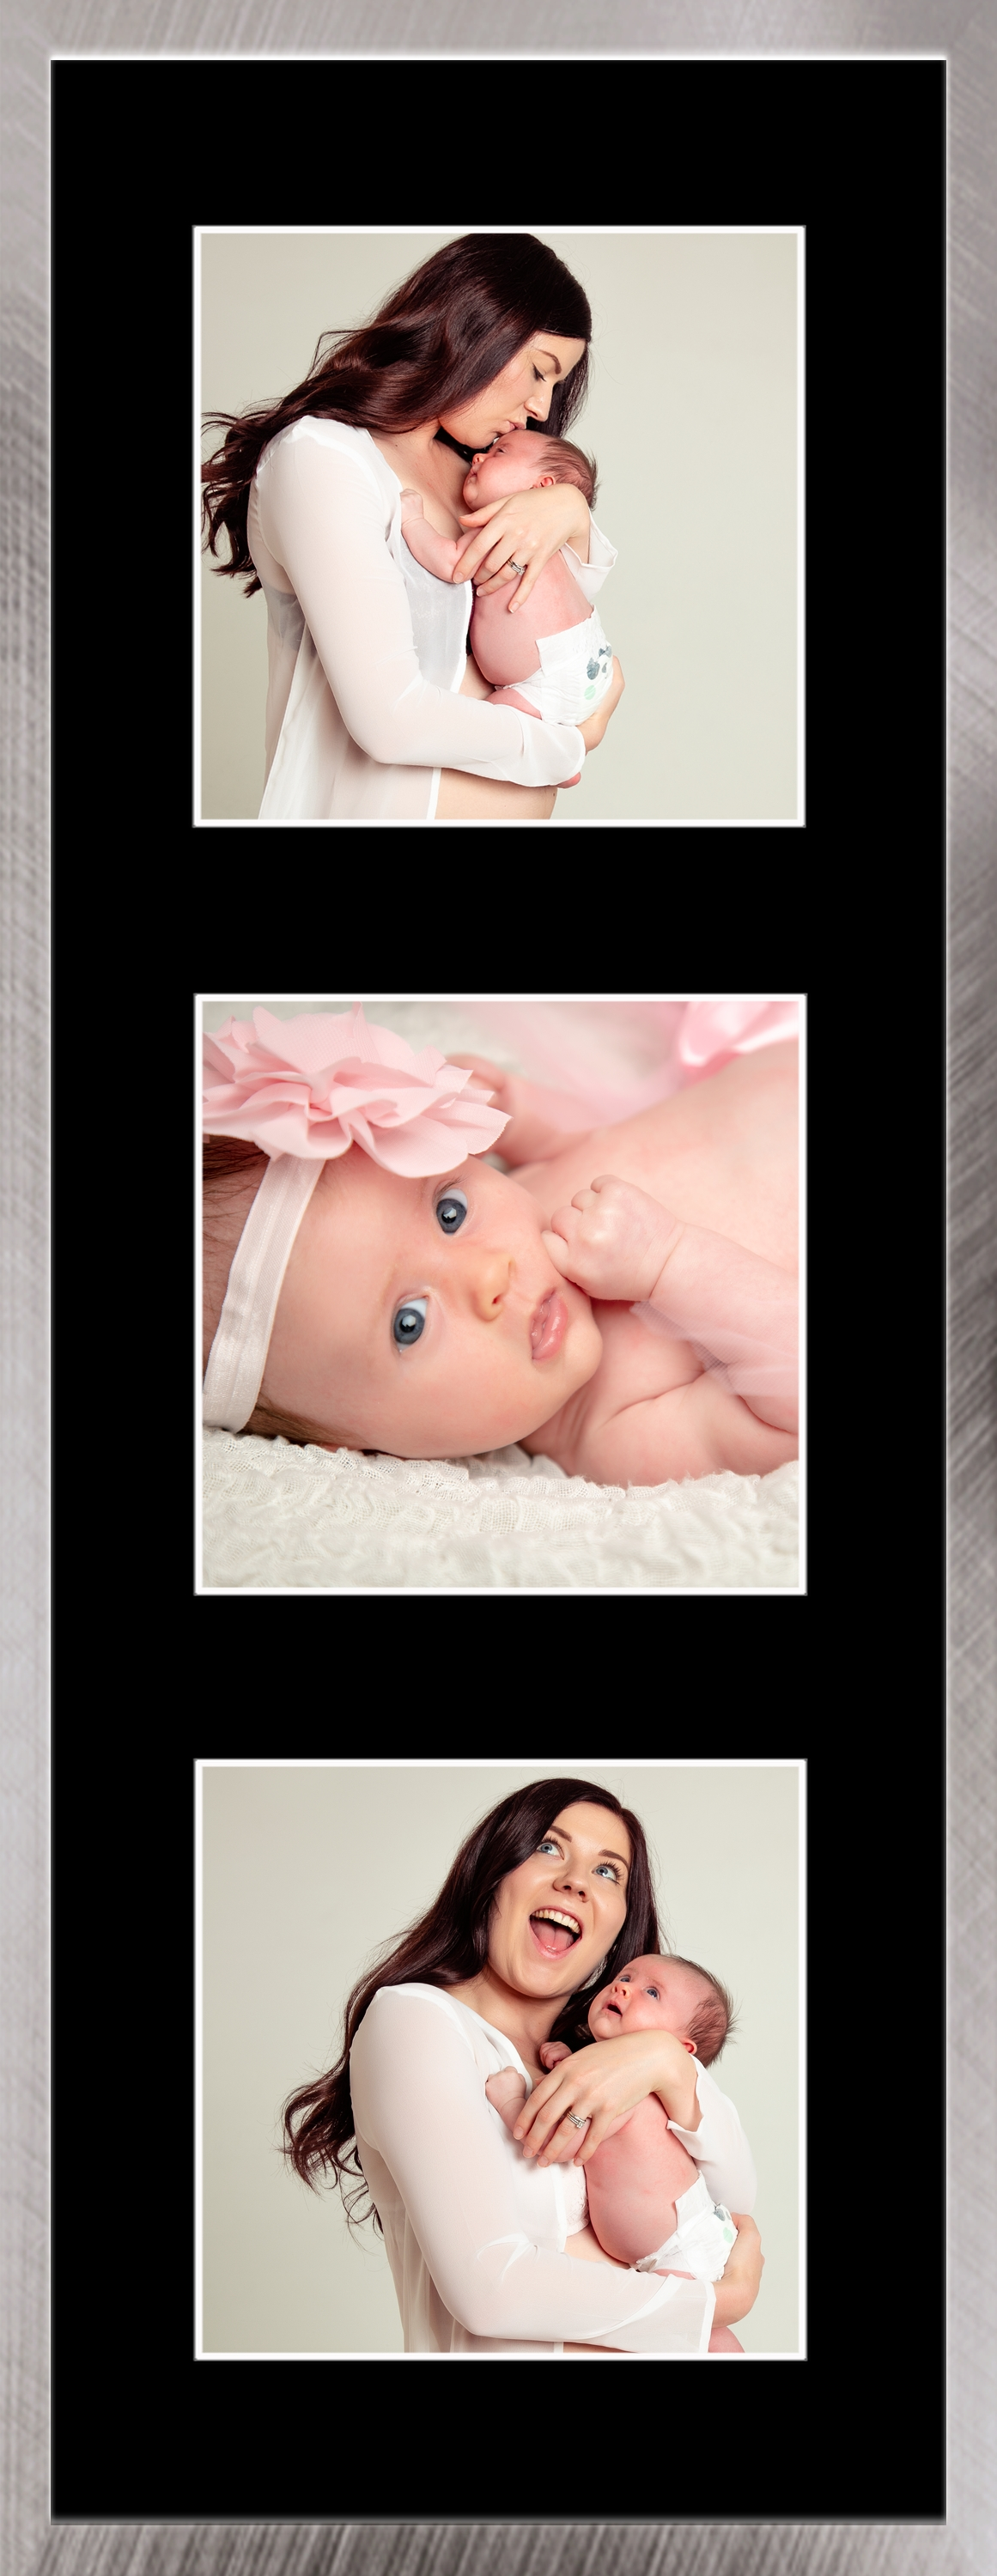 zigzag-photography-leicester-newborn-photographer-baby-photography-photo-shoot-family-leicestershire